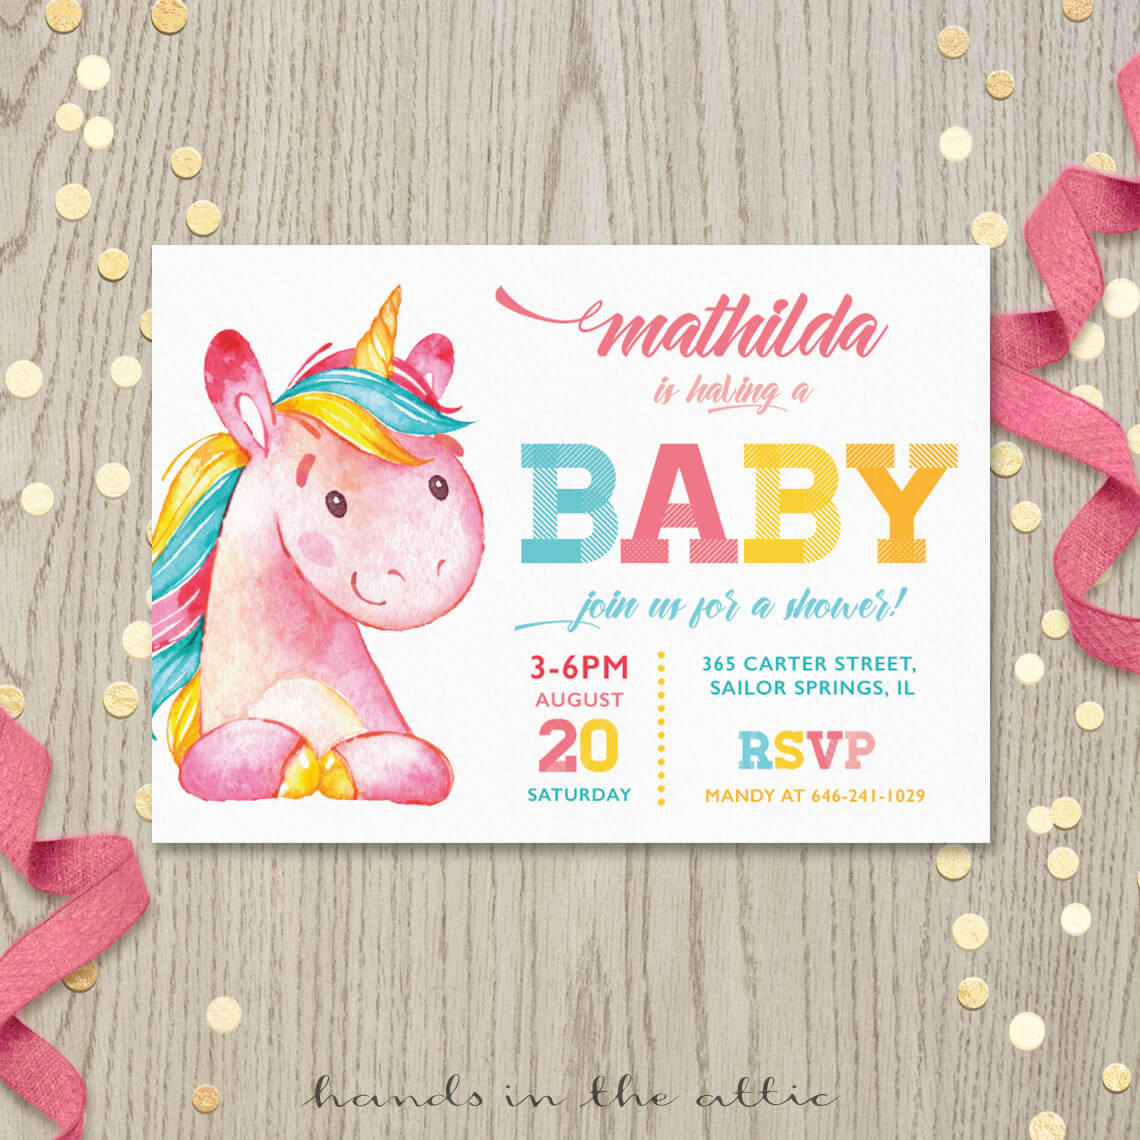 Pink unicorn baby shower invitation printable stationery image for pink unicorn baby shower invitation filmwisefo